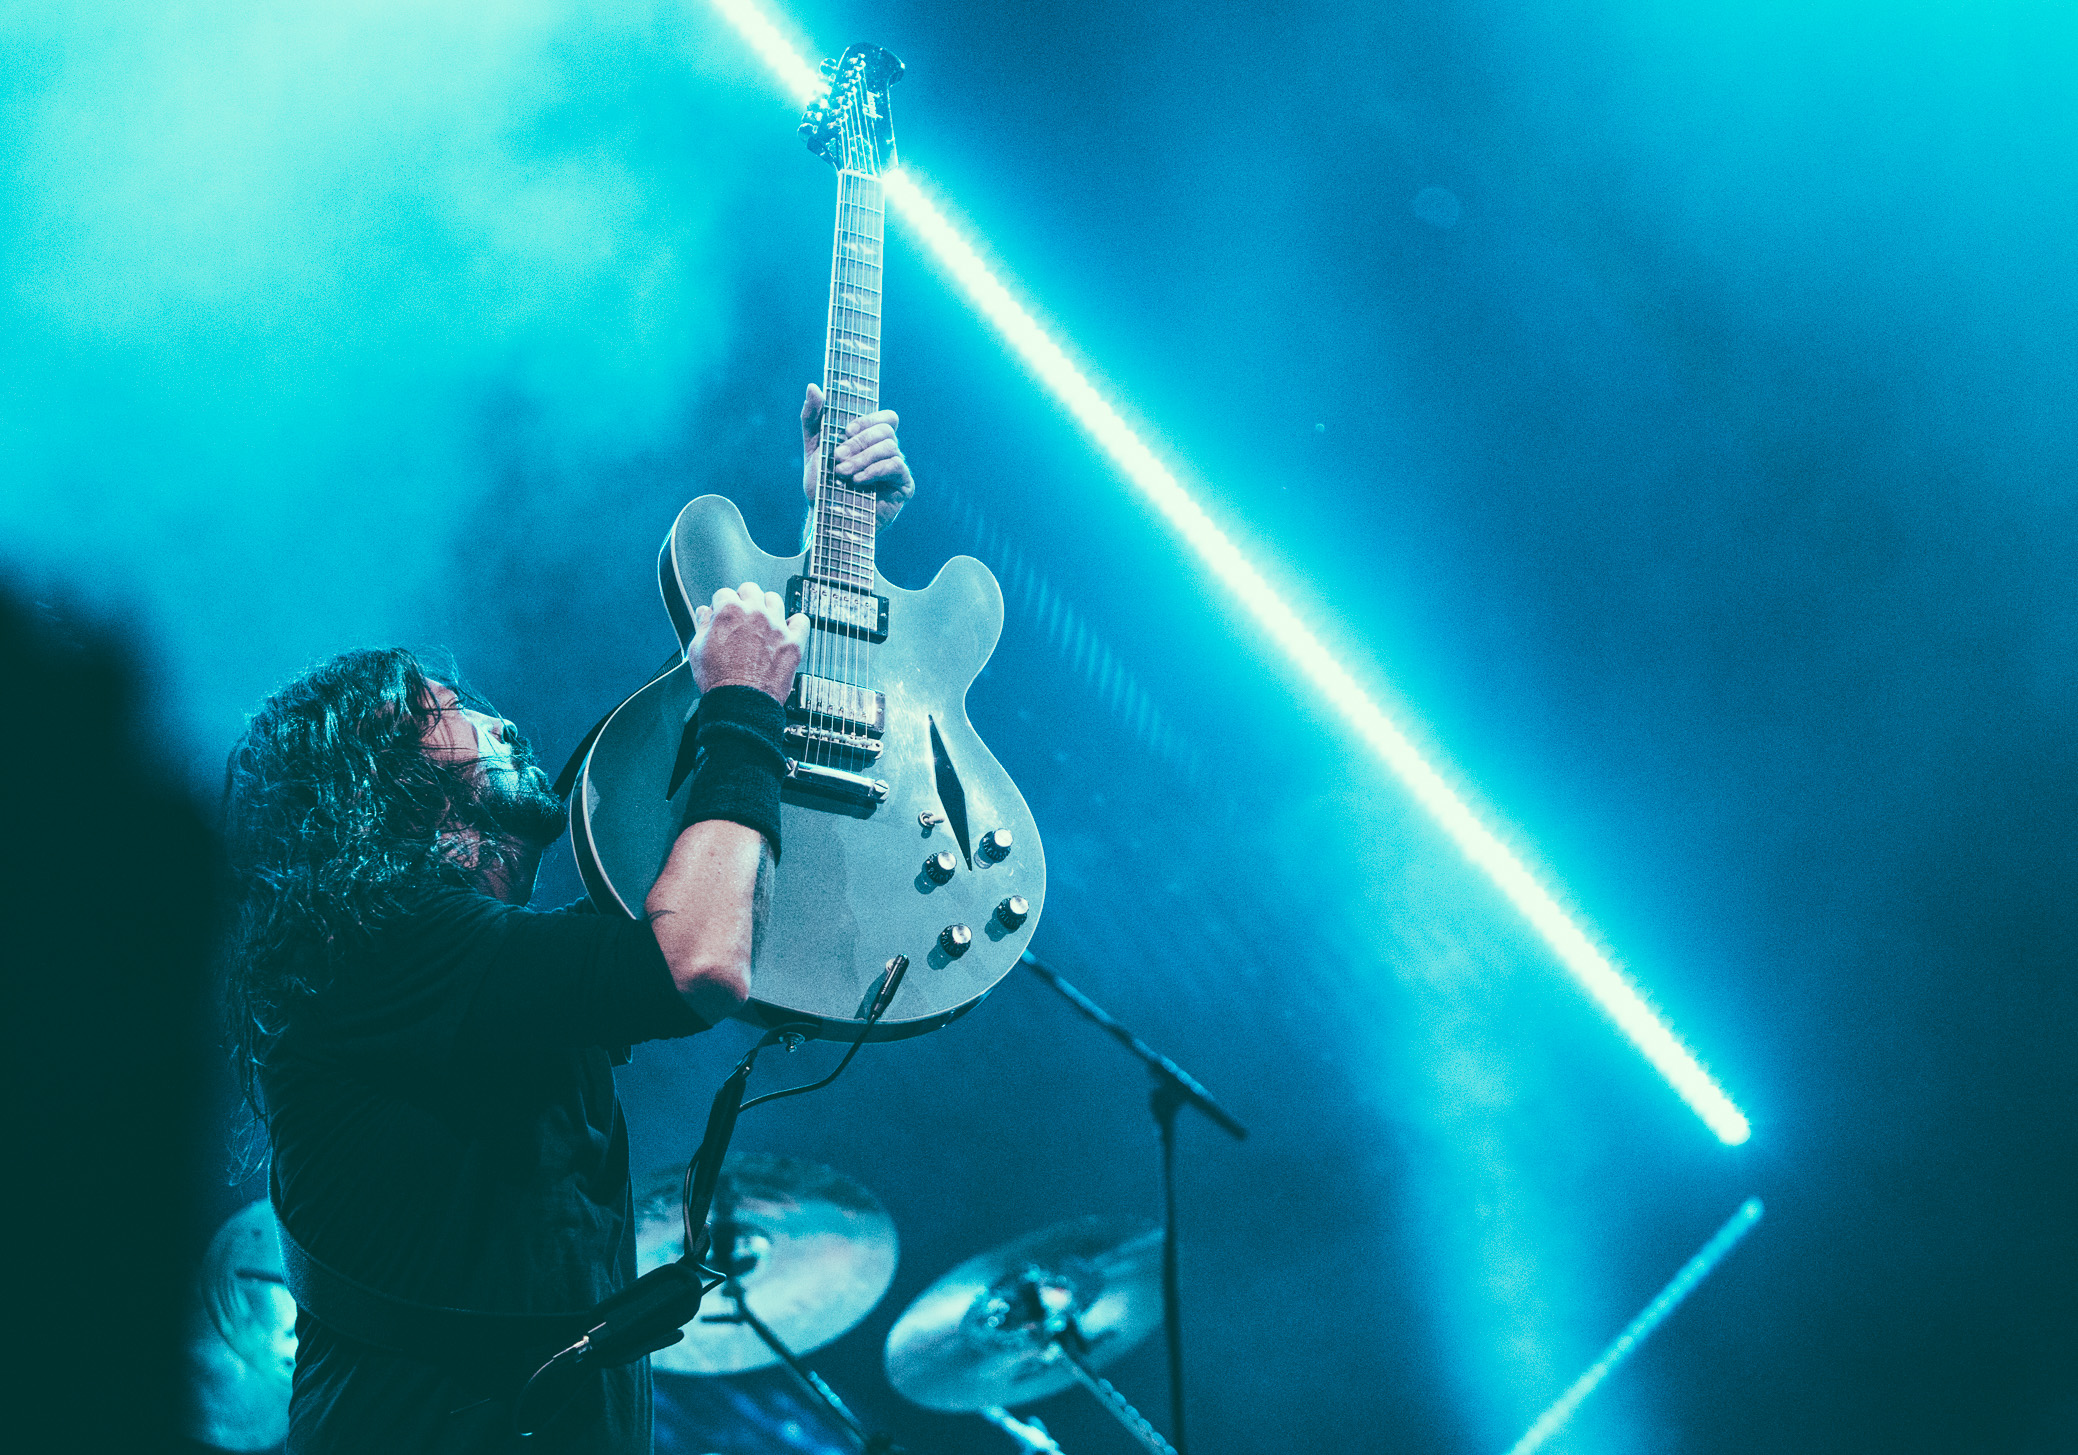 Dave Grohl of Foo Fighters performs in concert at Legacy Arena at the Birmingham-Jefferson Civic Center in Birmingham, Alabama on October 26th, 2017. (Photo by David A. Smith/DSmithScenes)